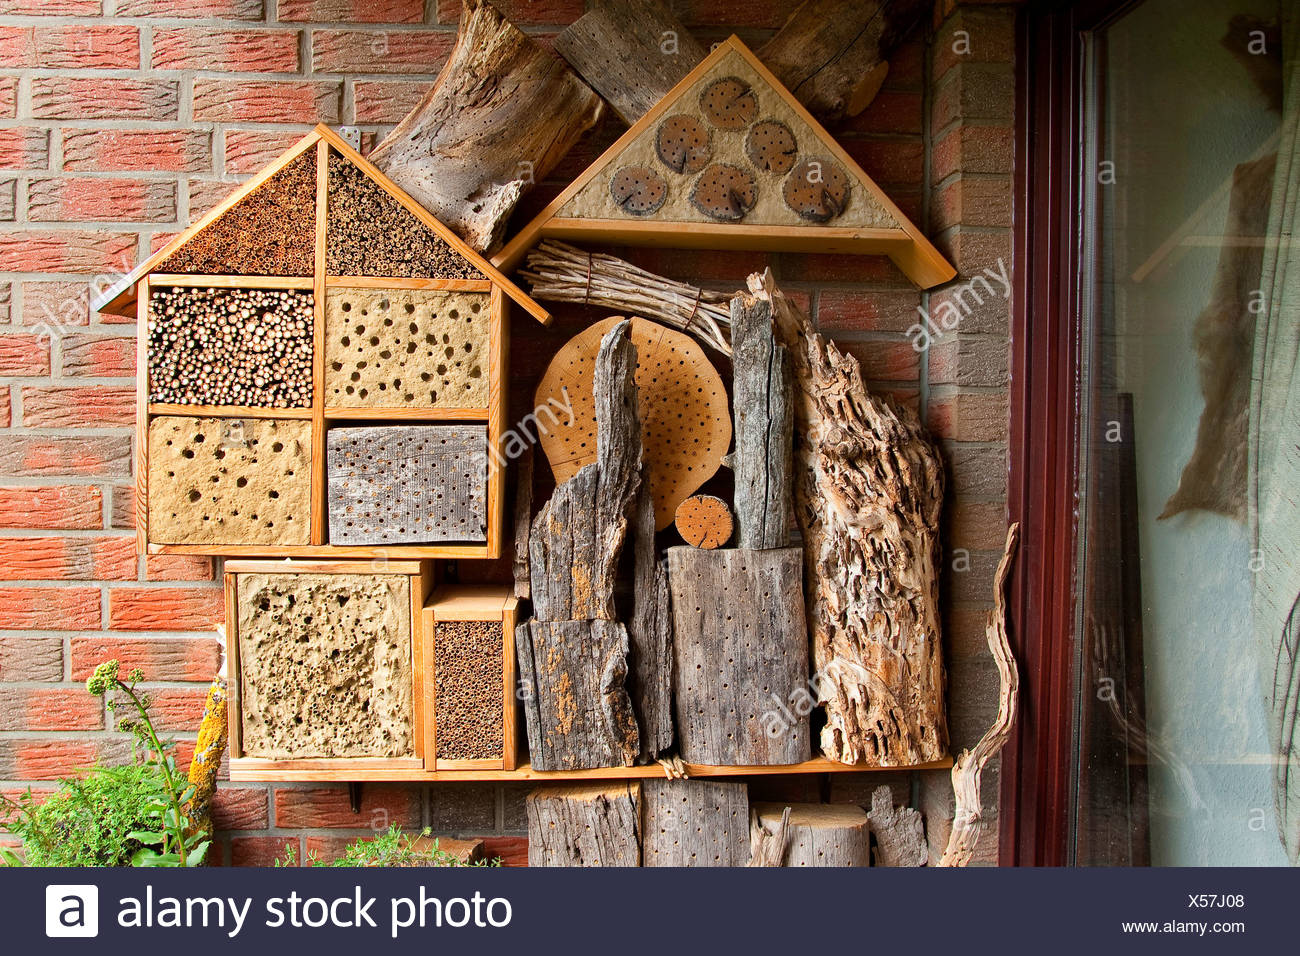 insect hotel on a balcony, Germany - Stock Image